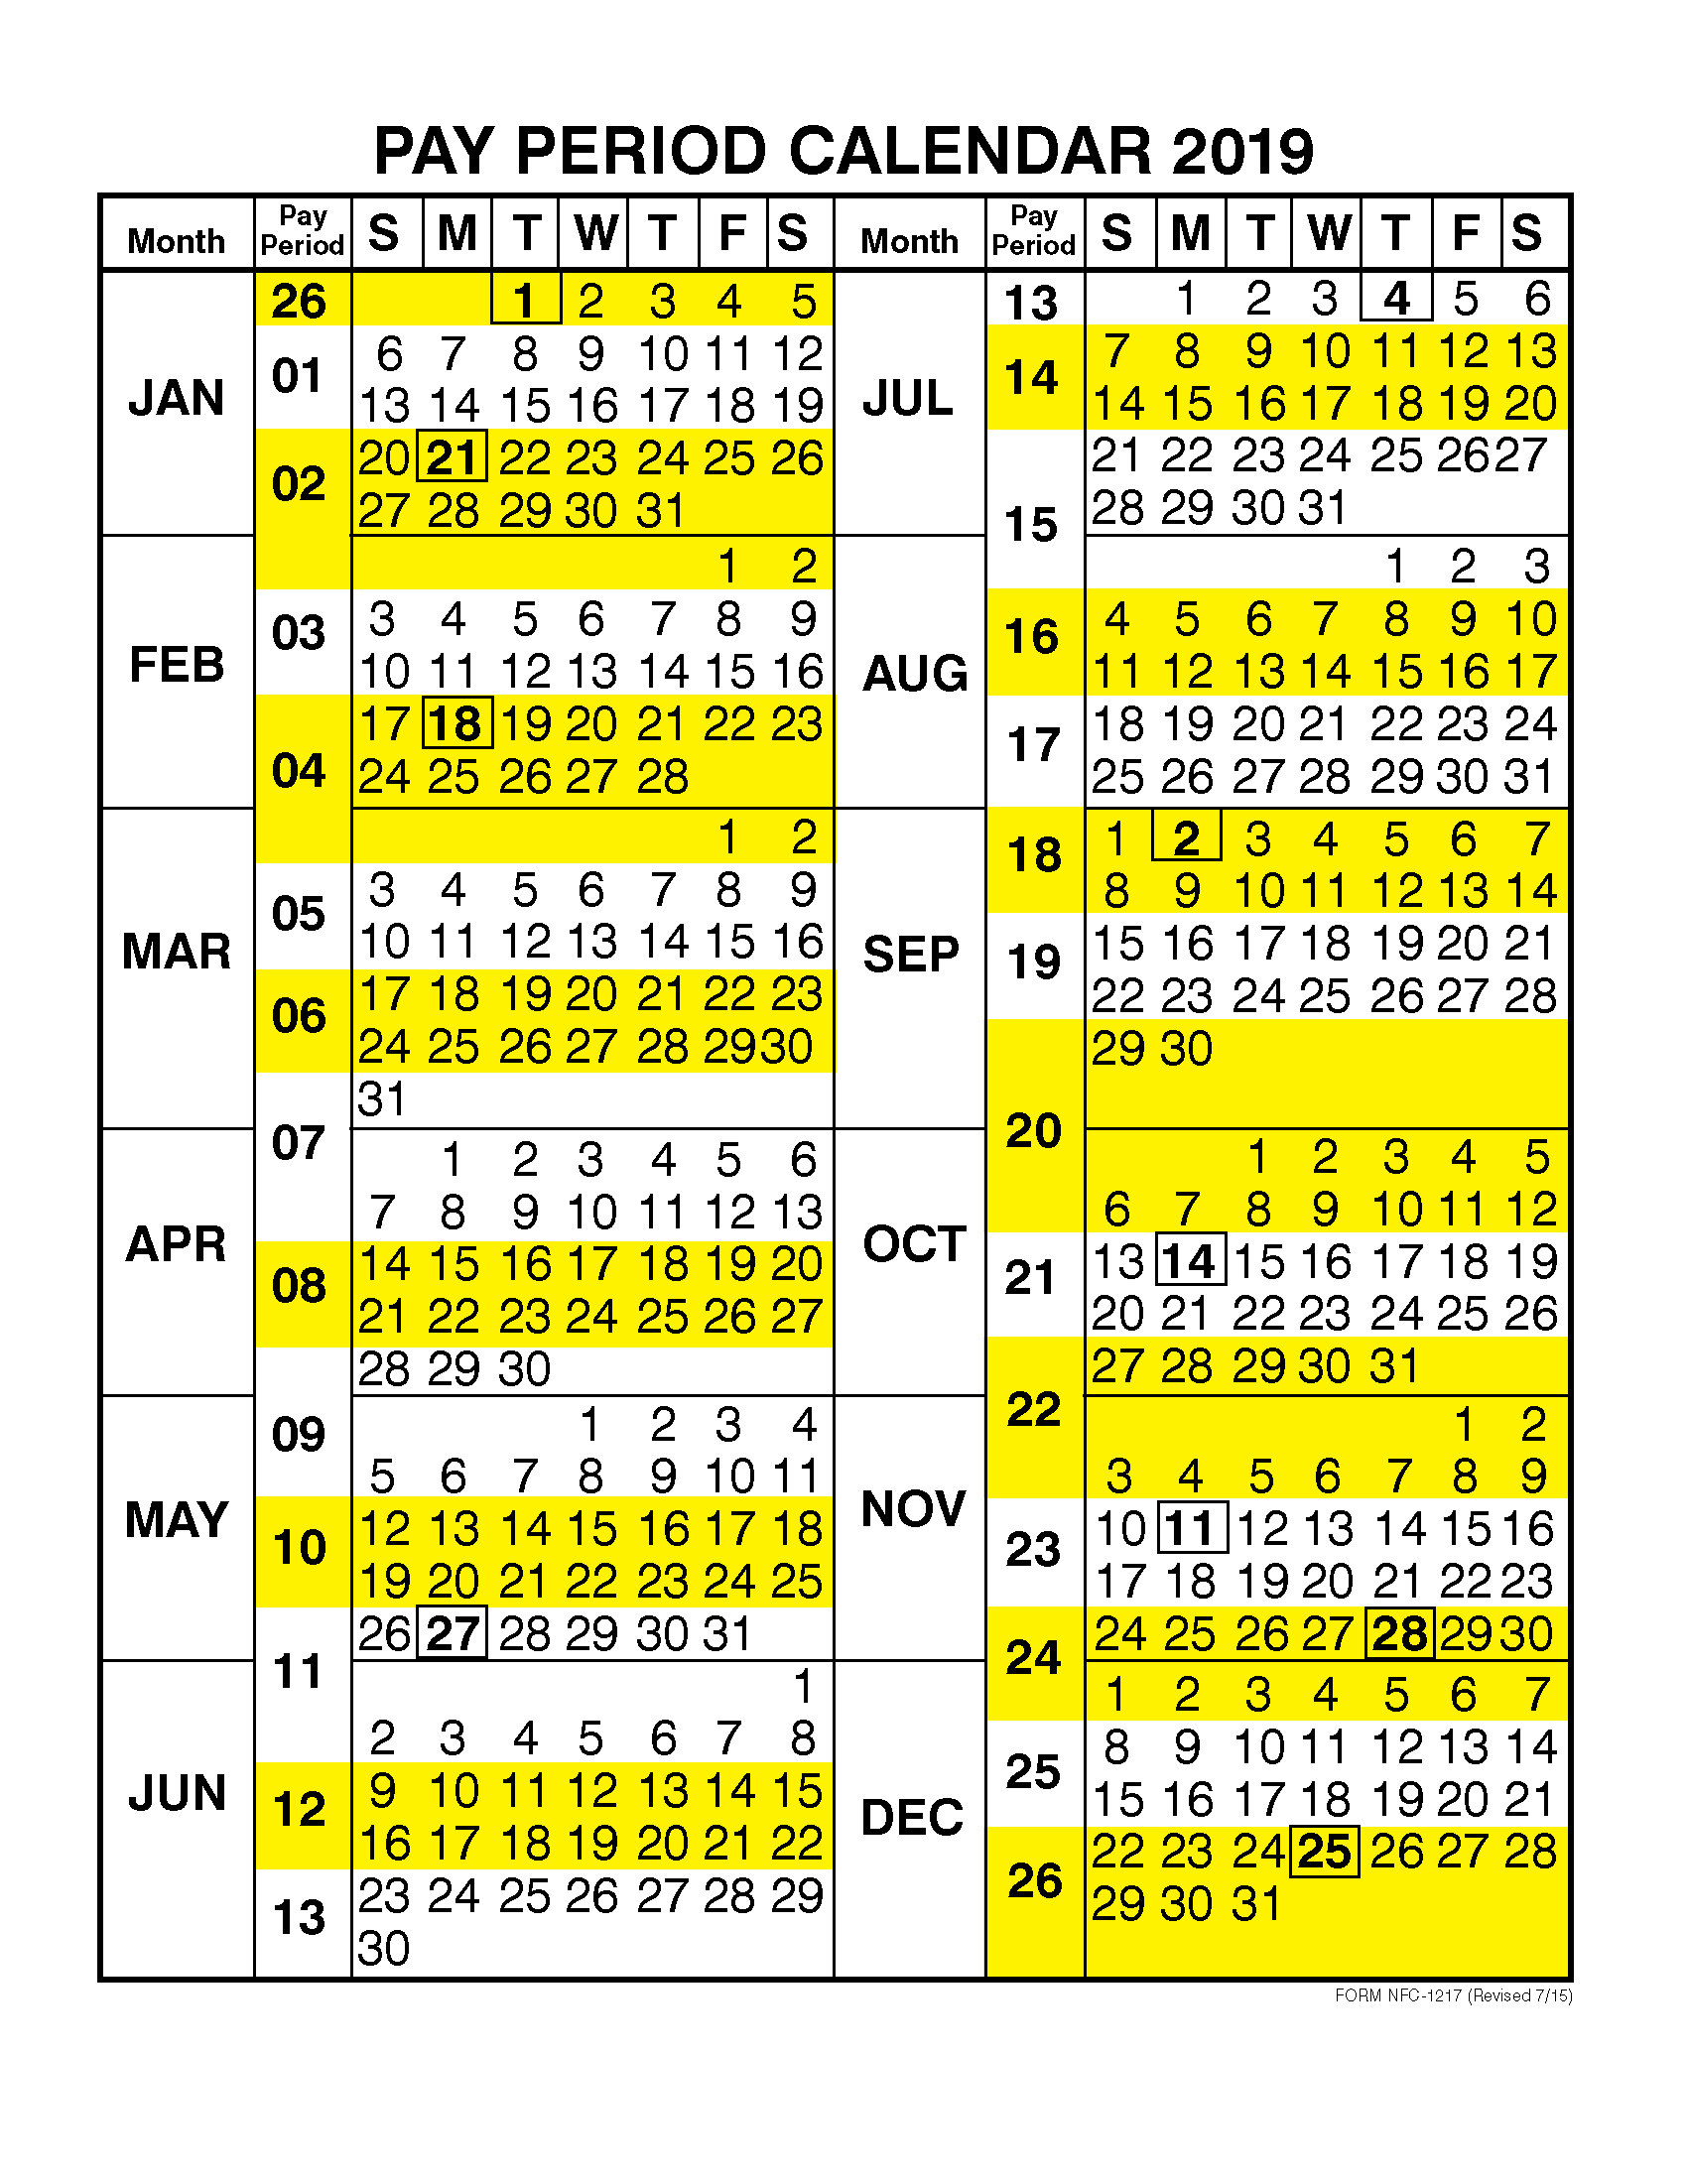 Federal Pay Period Calendar 2019 Pay Period Calendar 2019 by Calendar Year | Free Printable 2019